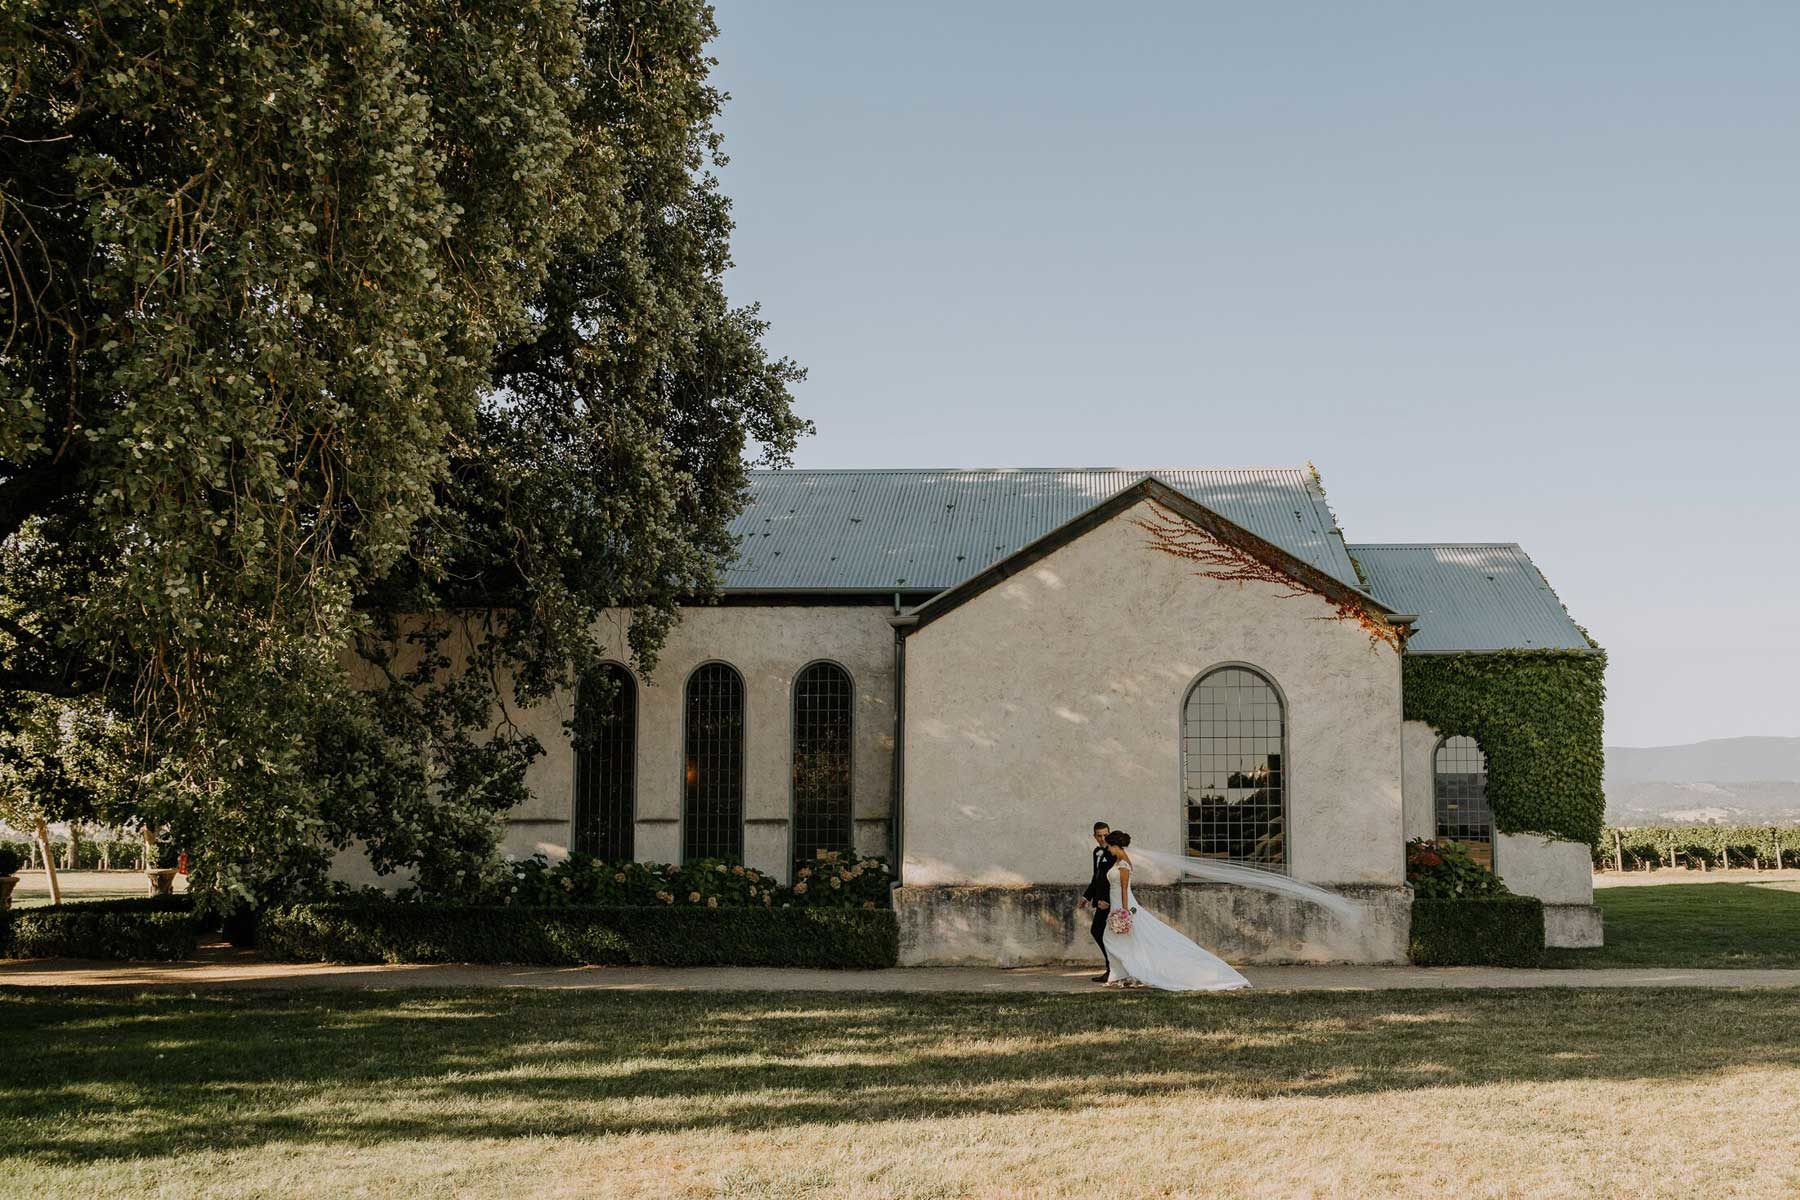 Yarra Valley wedding photographer - Rick Liston